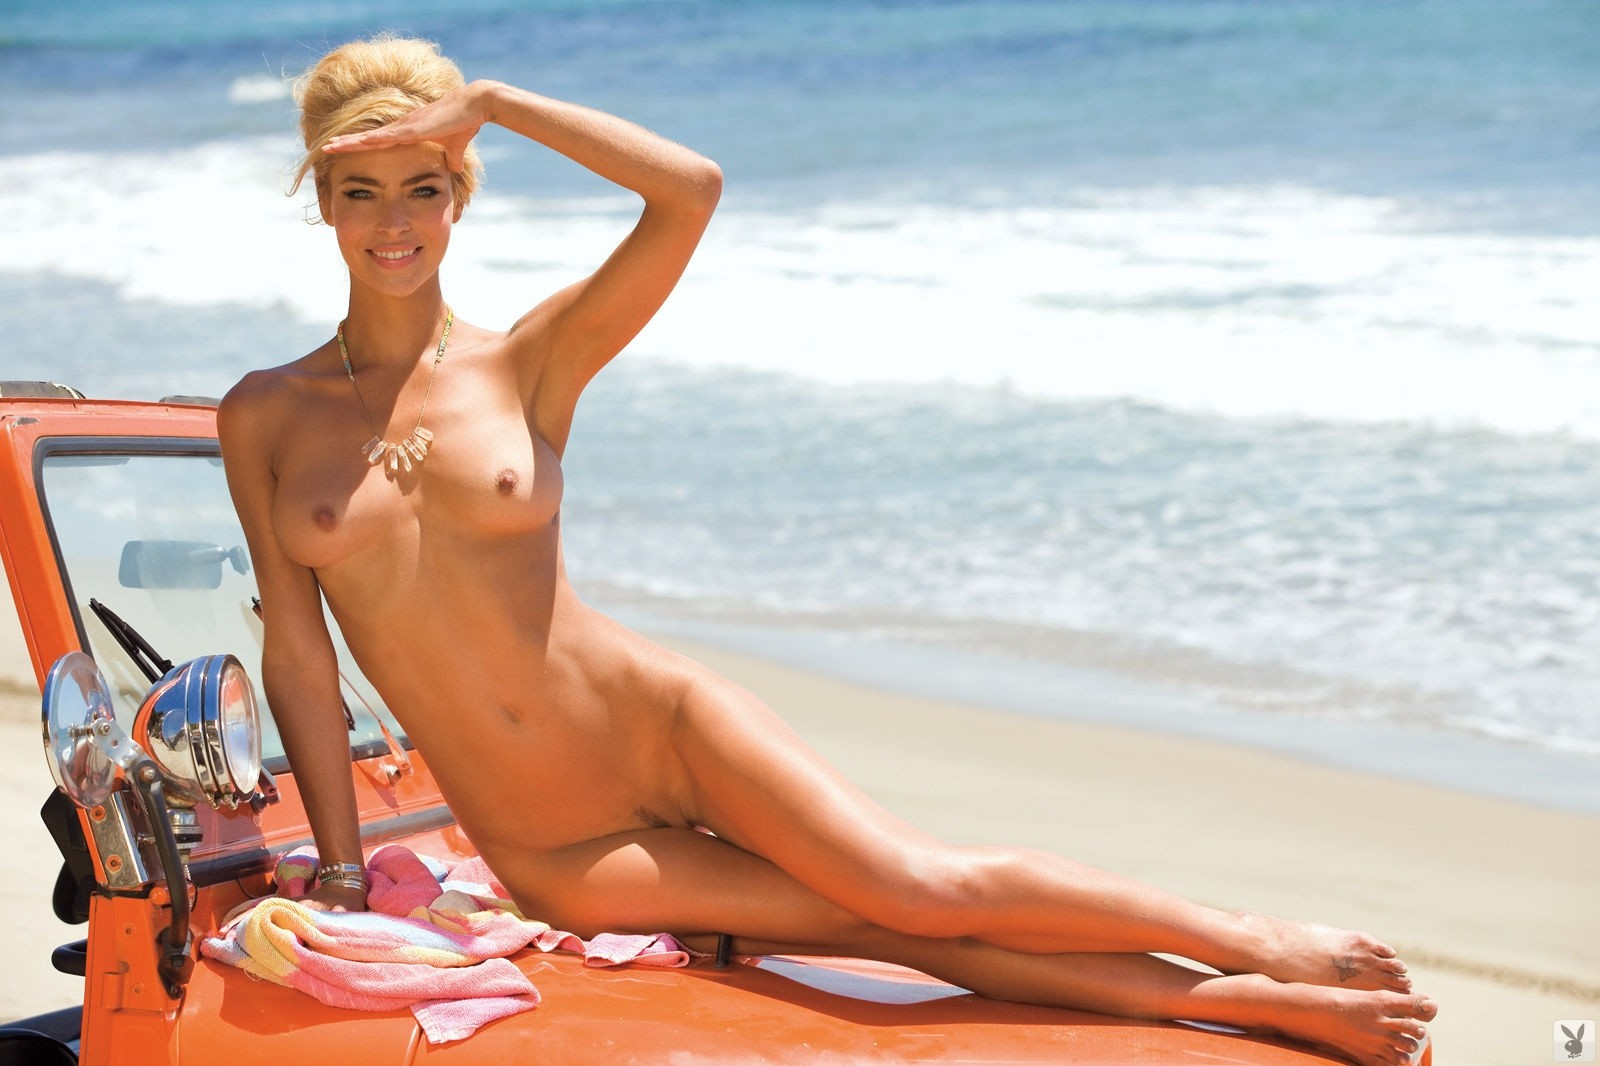 Lisa Seiffert - Playboy Playmate of the Month for March 2012